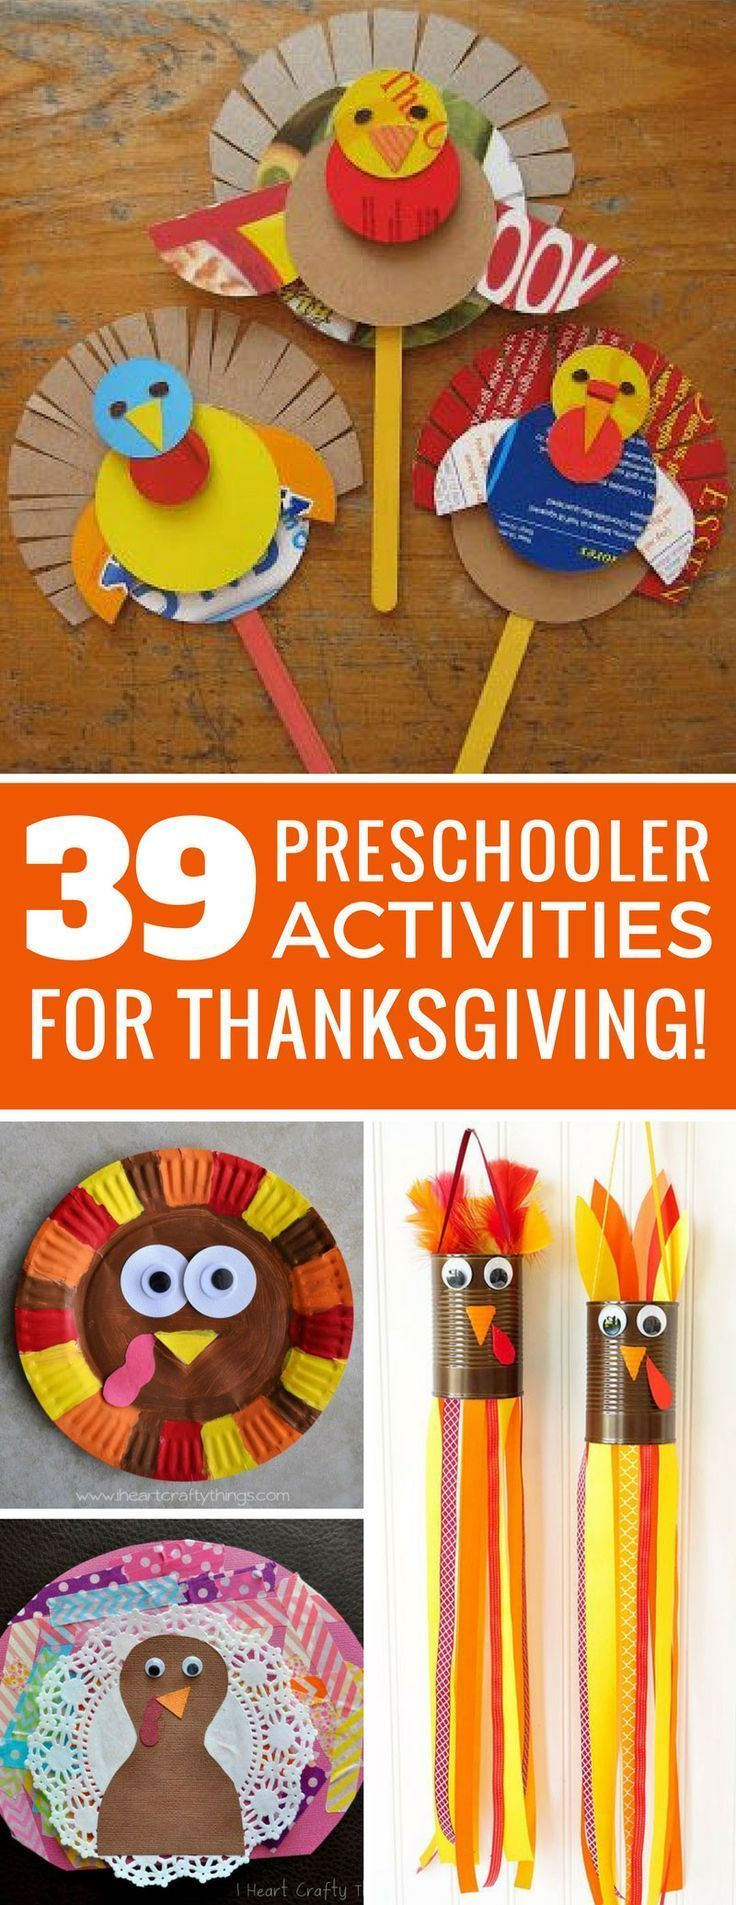 15+ Printable thanksgiving crafts for preschoolers ideas in 2021